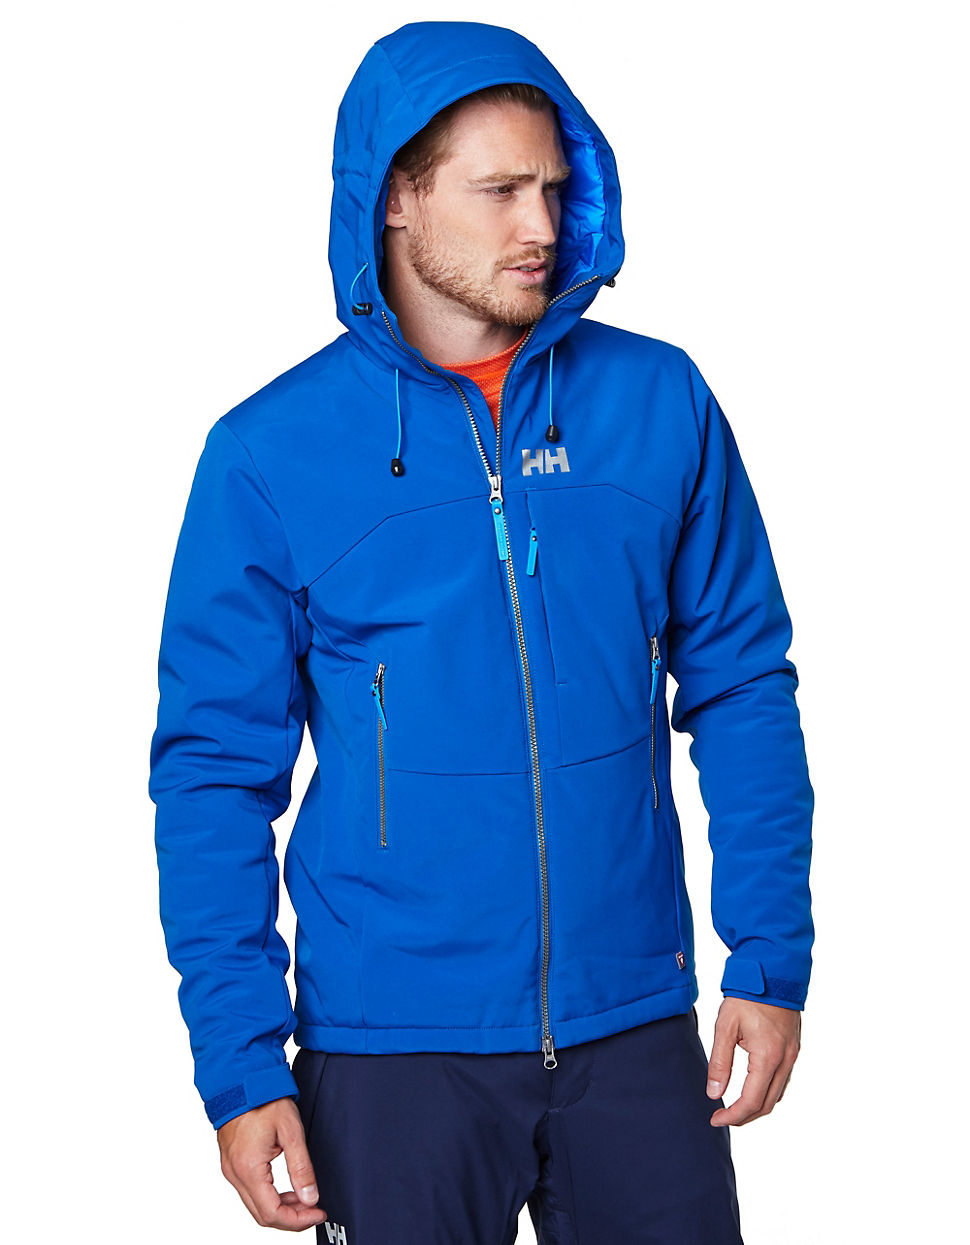 lyst helly hansen paramount insulated softshell jacket in blue for men. Black Bedroom Furniture Sets. Home Design Ideas